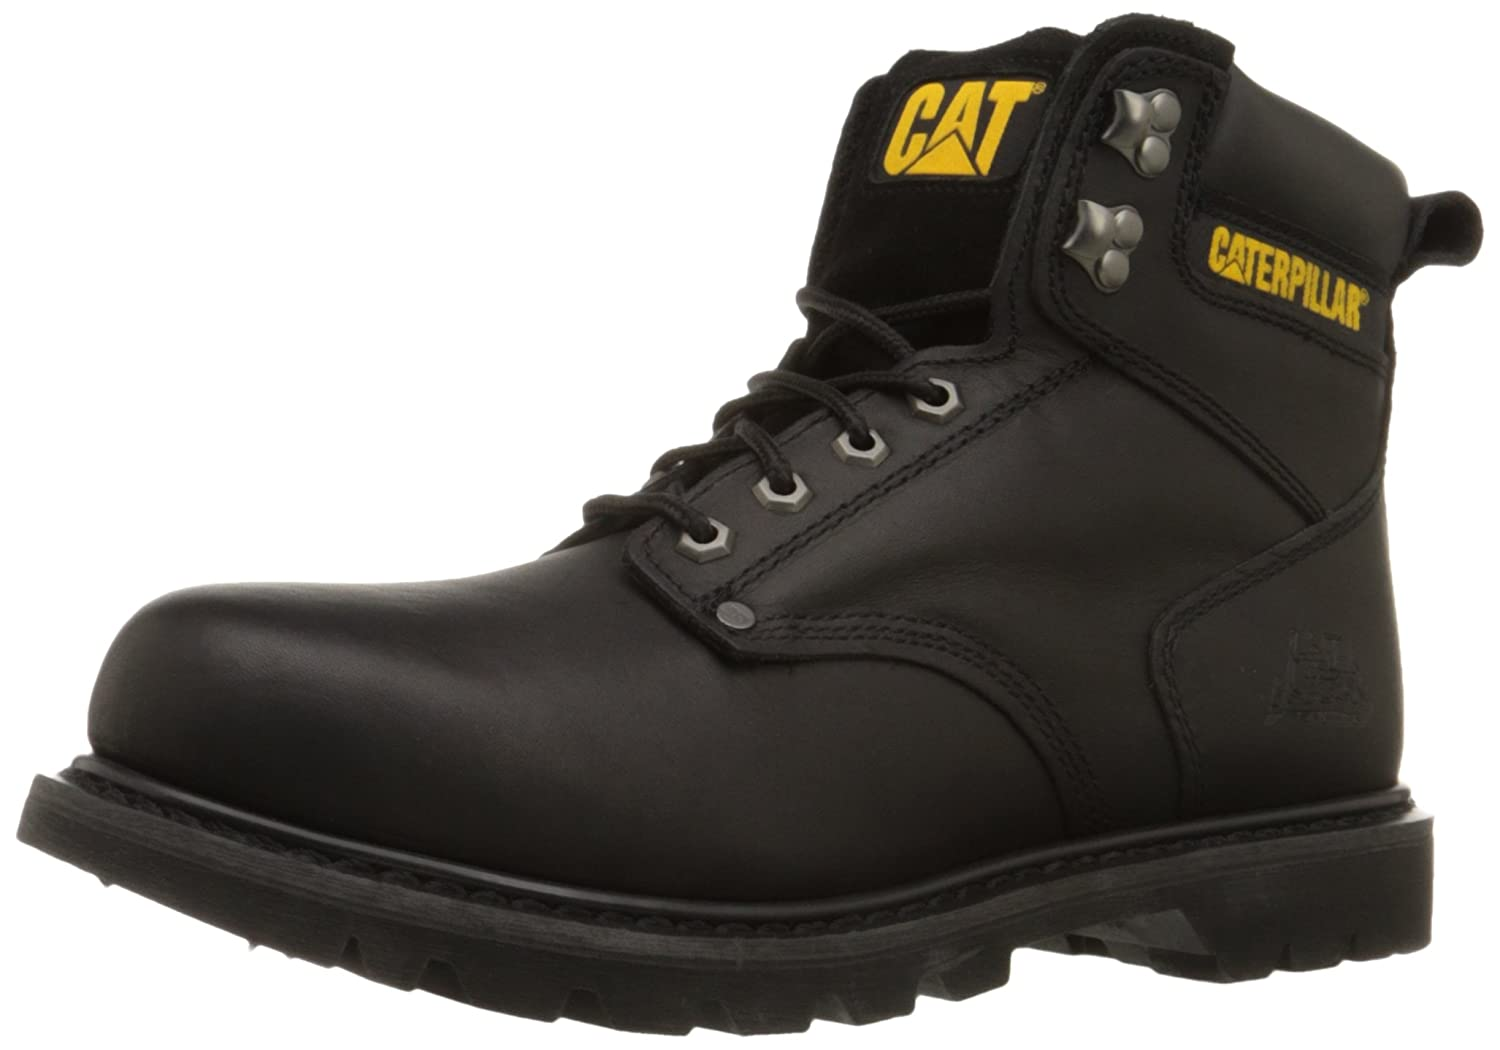 Discussion on this topic: Top 20 Best Work Boots For Men , top-20-best-work-boots-for-men/